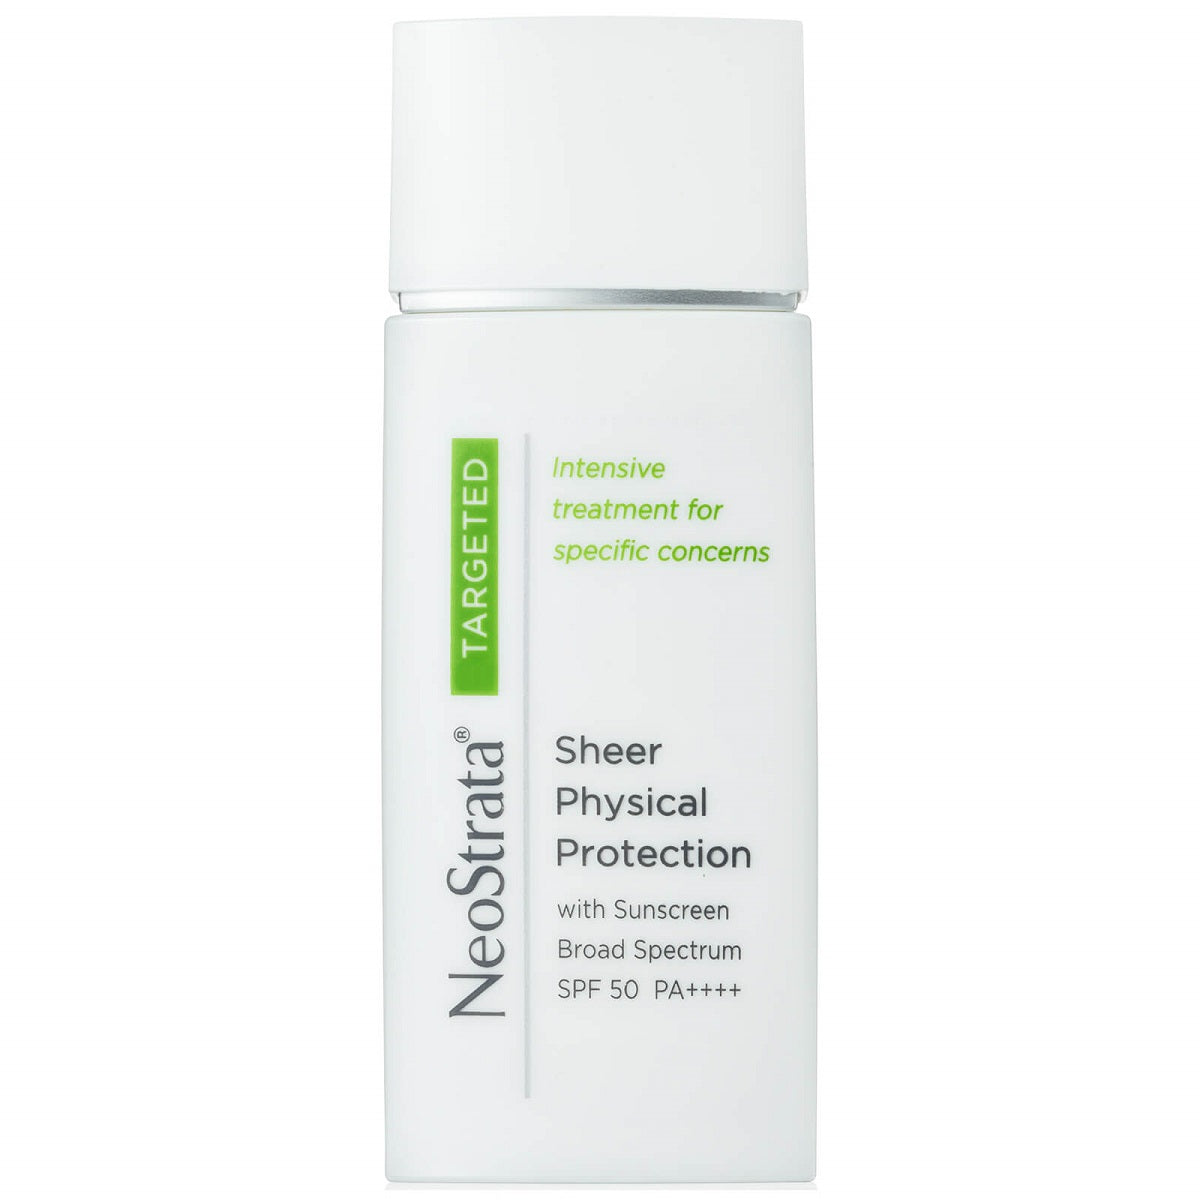 NeoStrata Targeted Treatment Sheer Physical Protection SPF50++++